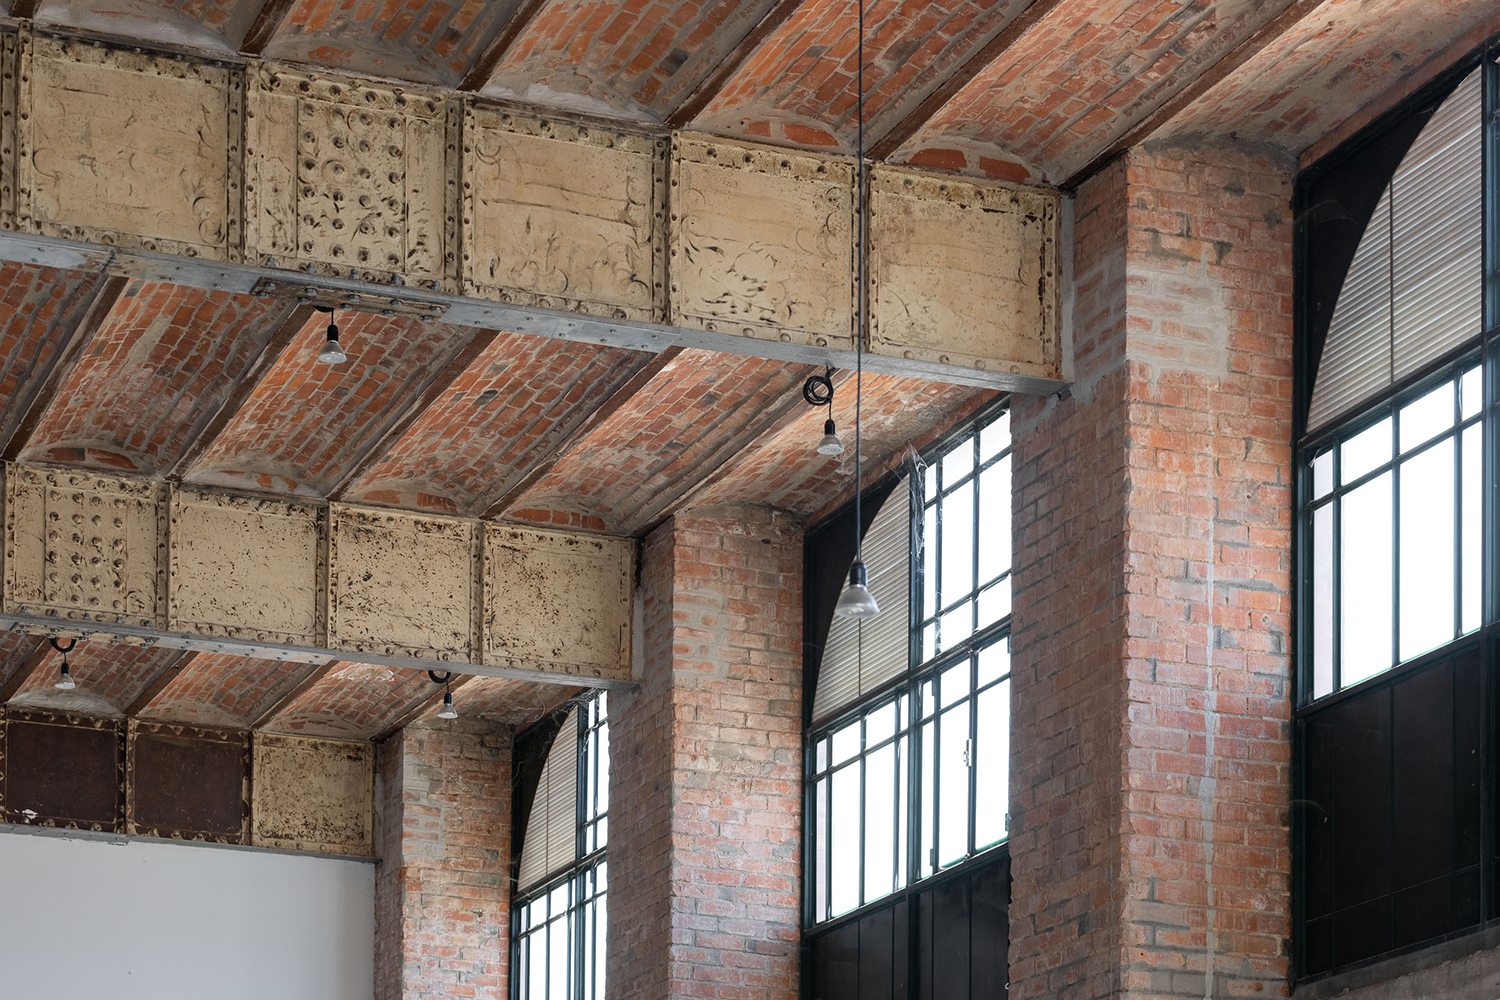 A close up of the barrel-vaulted brickwork and  rugged steel beams